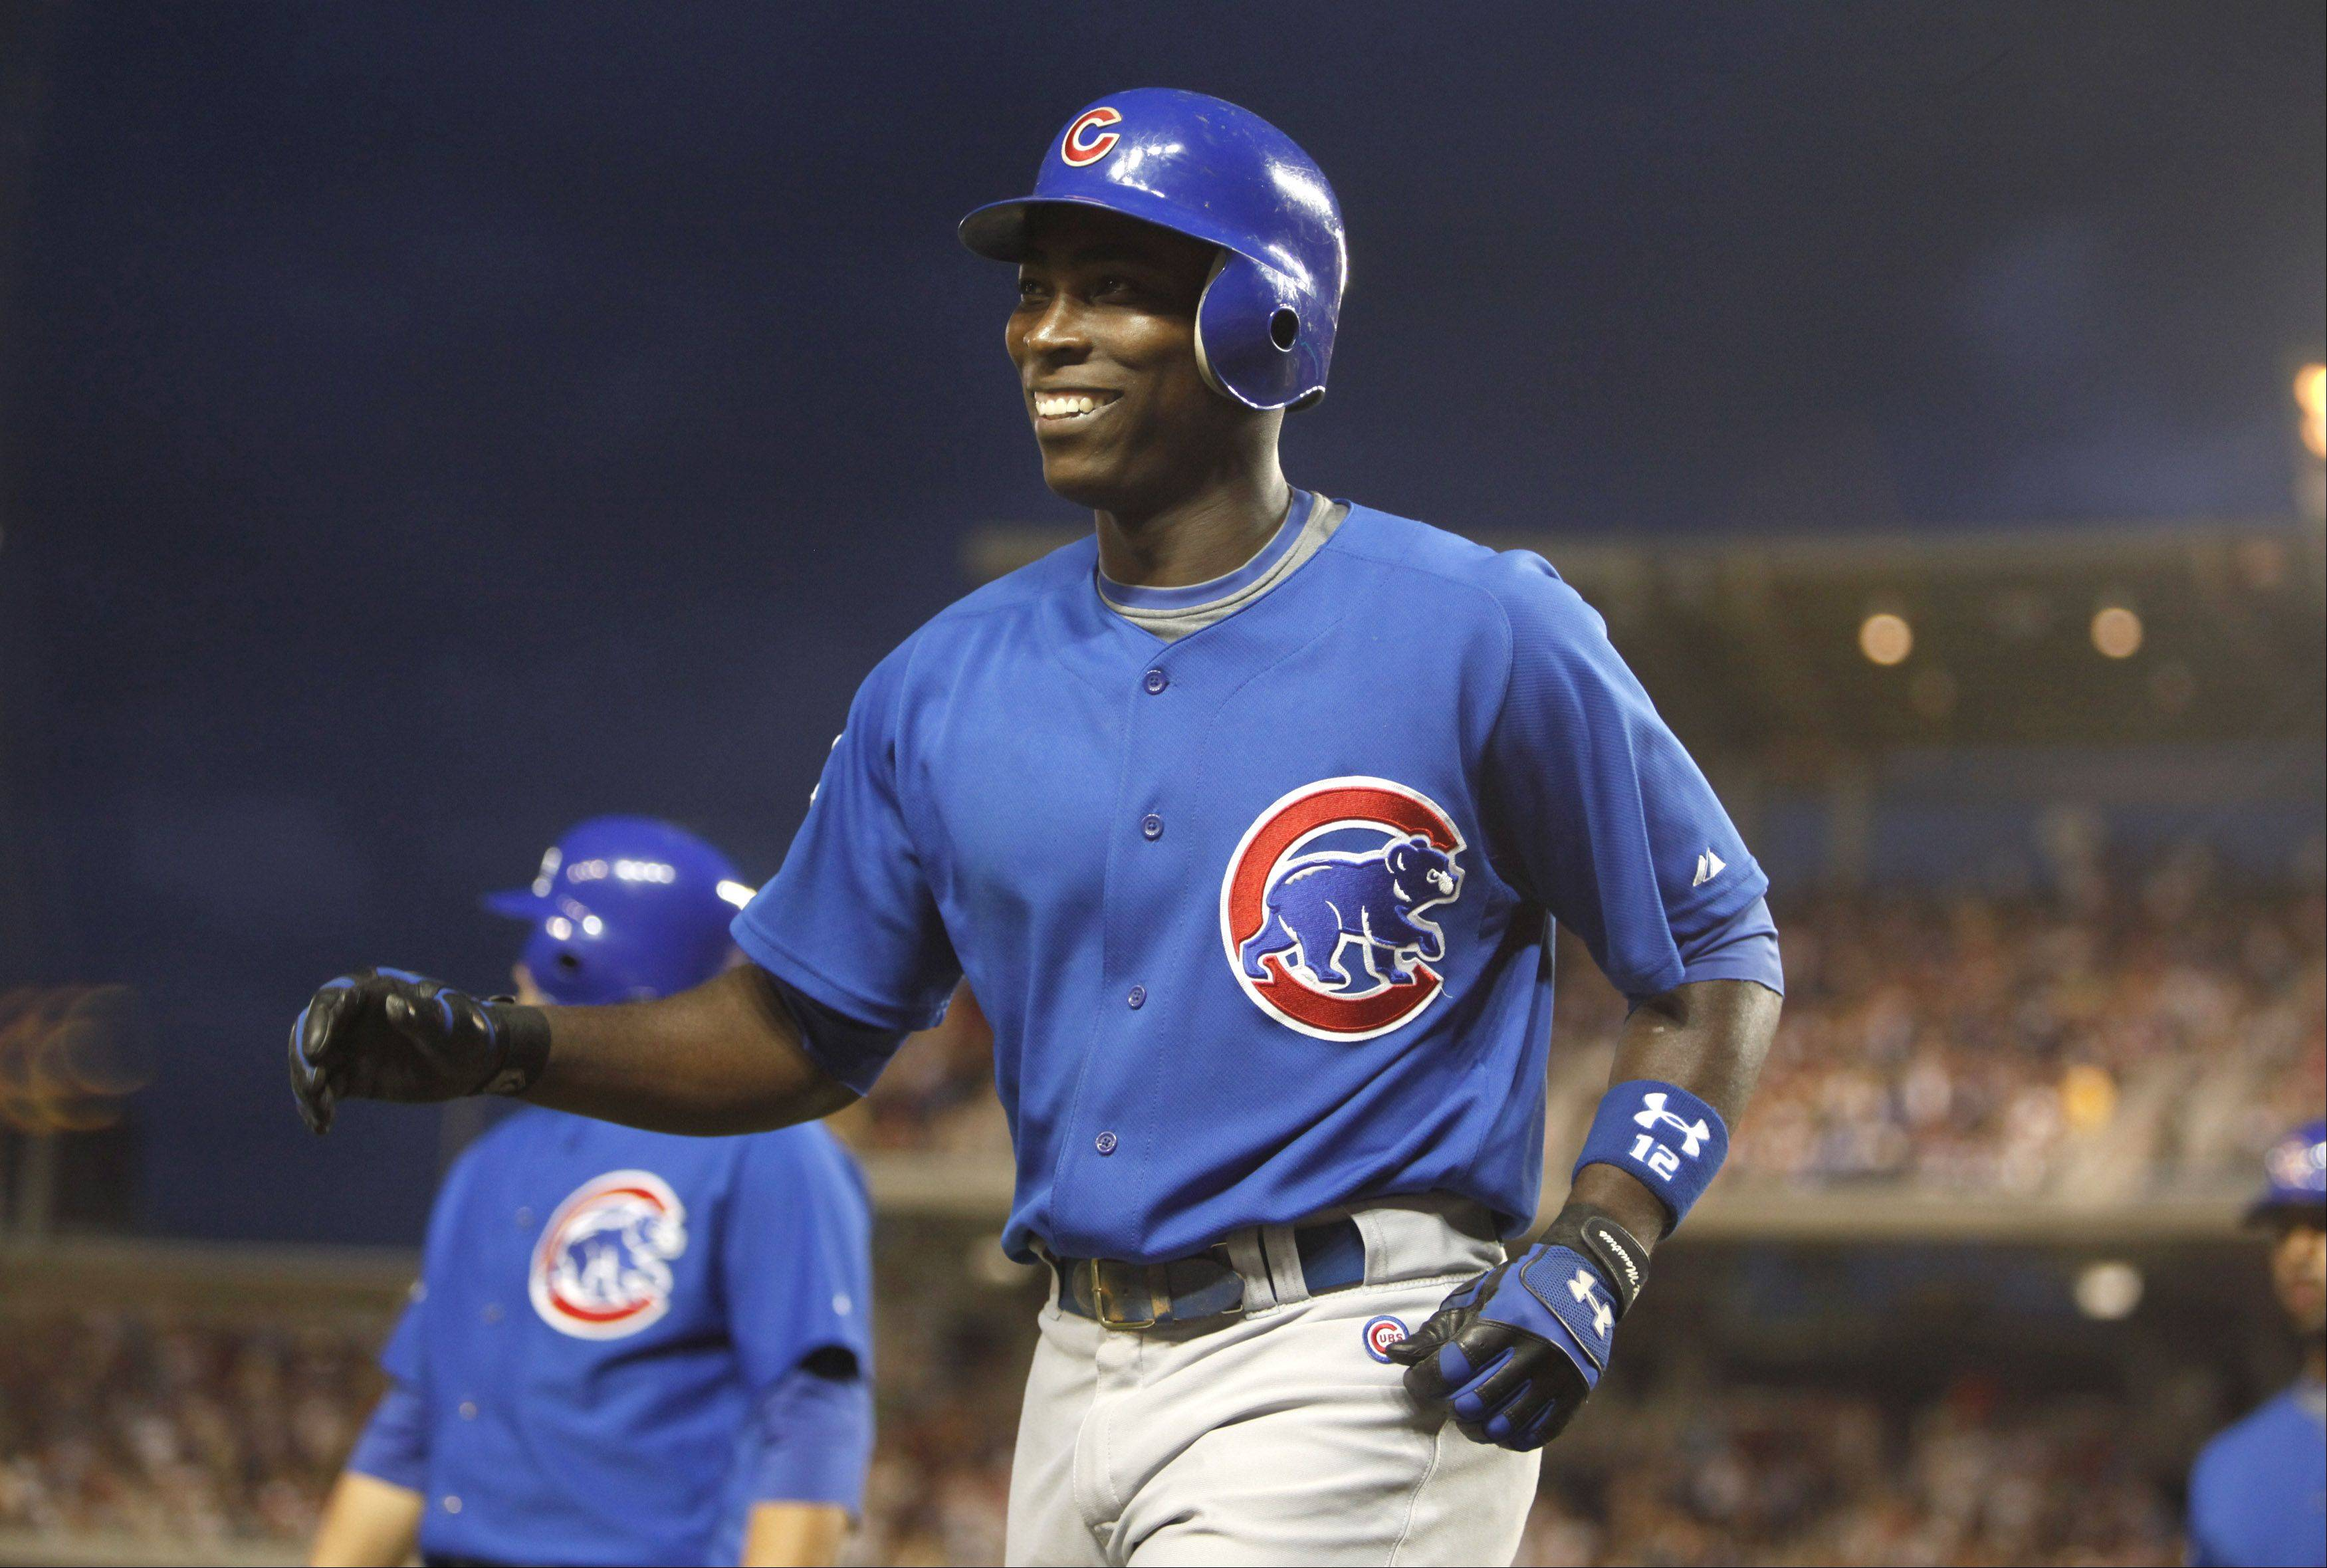 That ever-present smile was part of Alfonso Soriano's repertoire. This one came after he hit a three-run home run against the Washington Nationals in 2009.